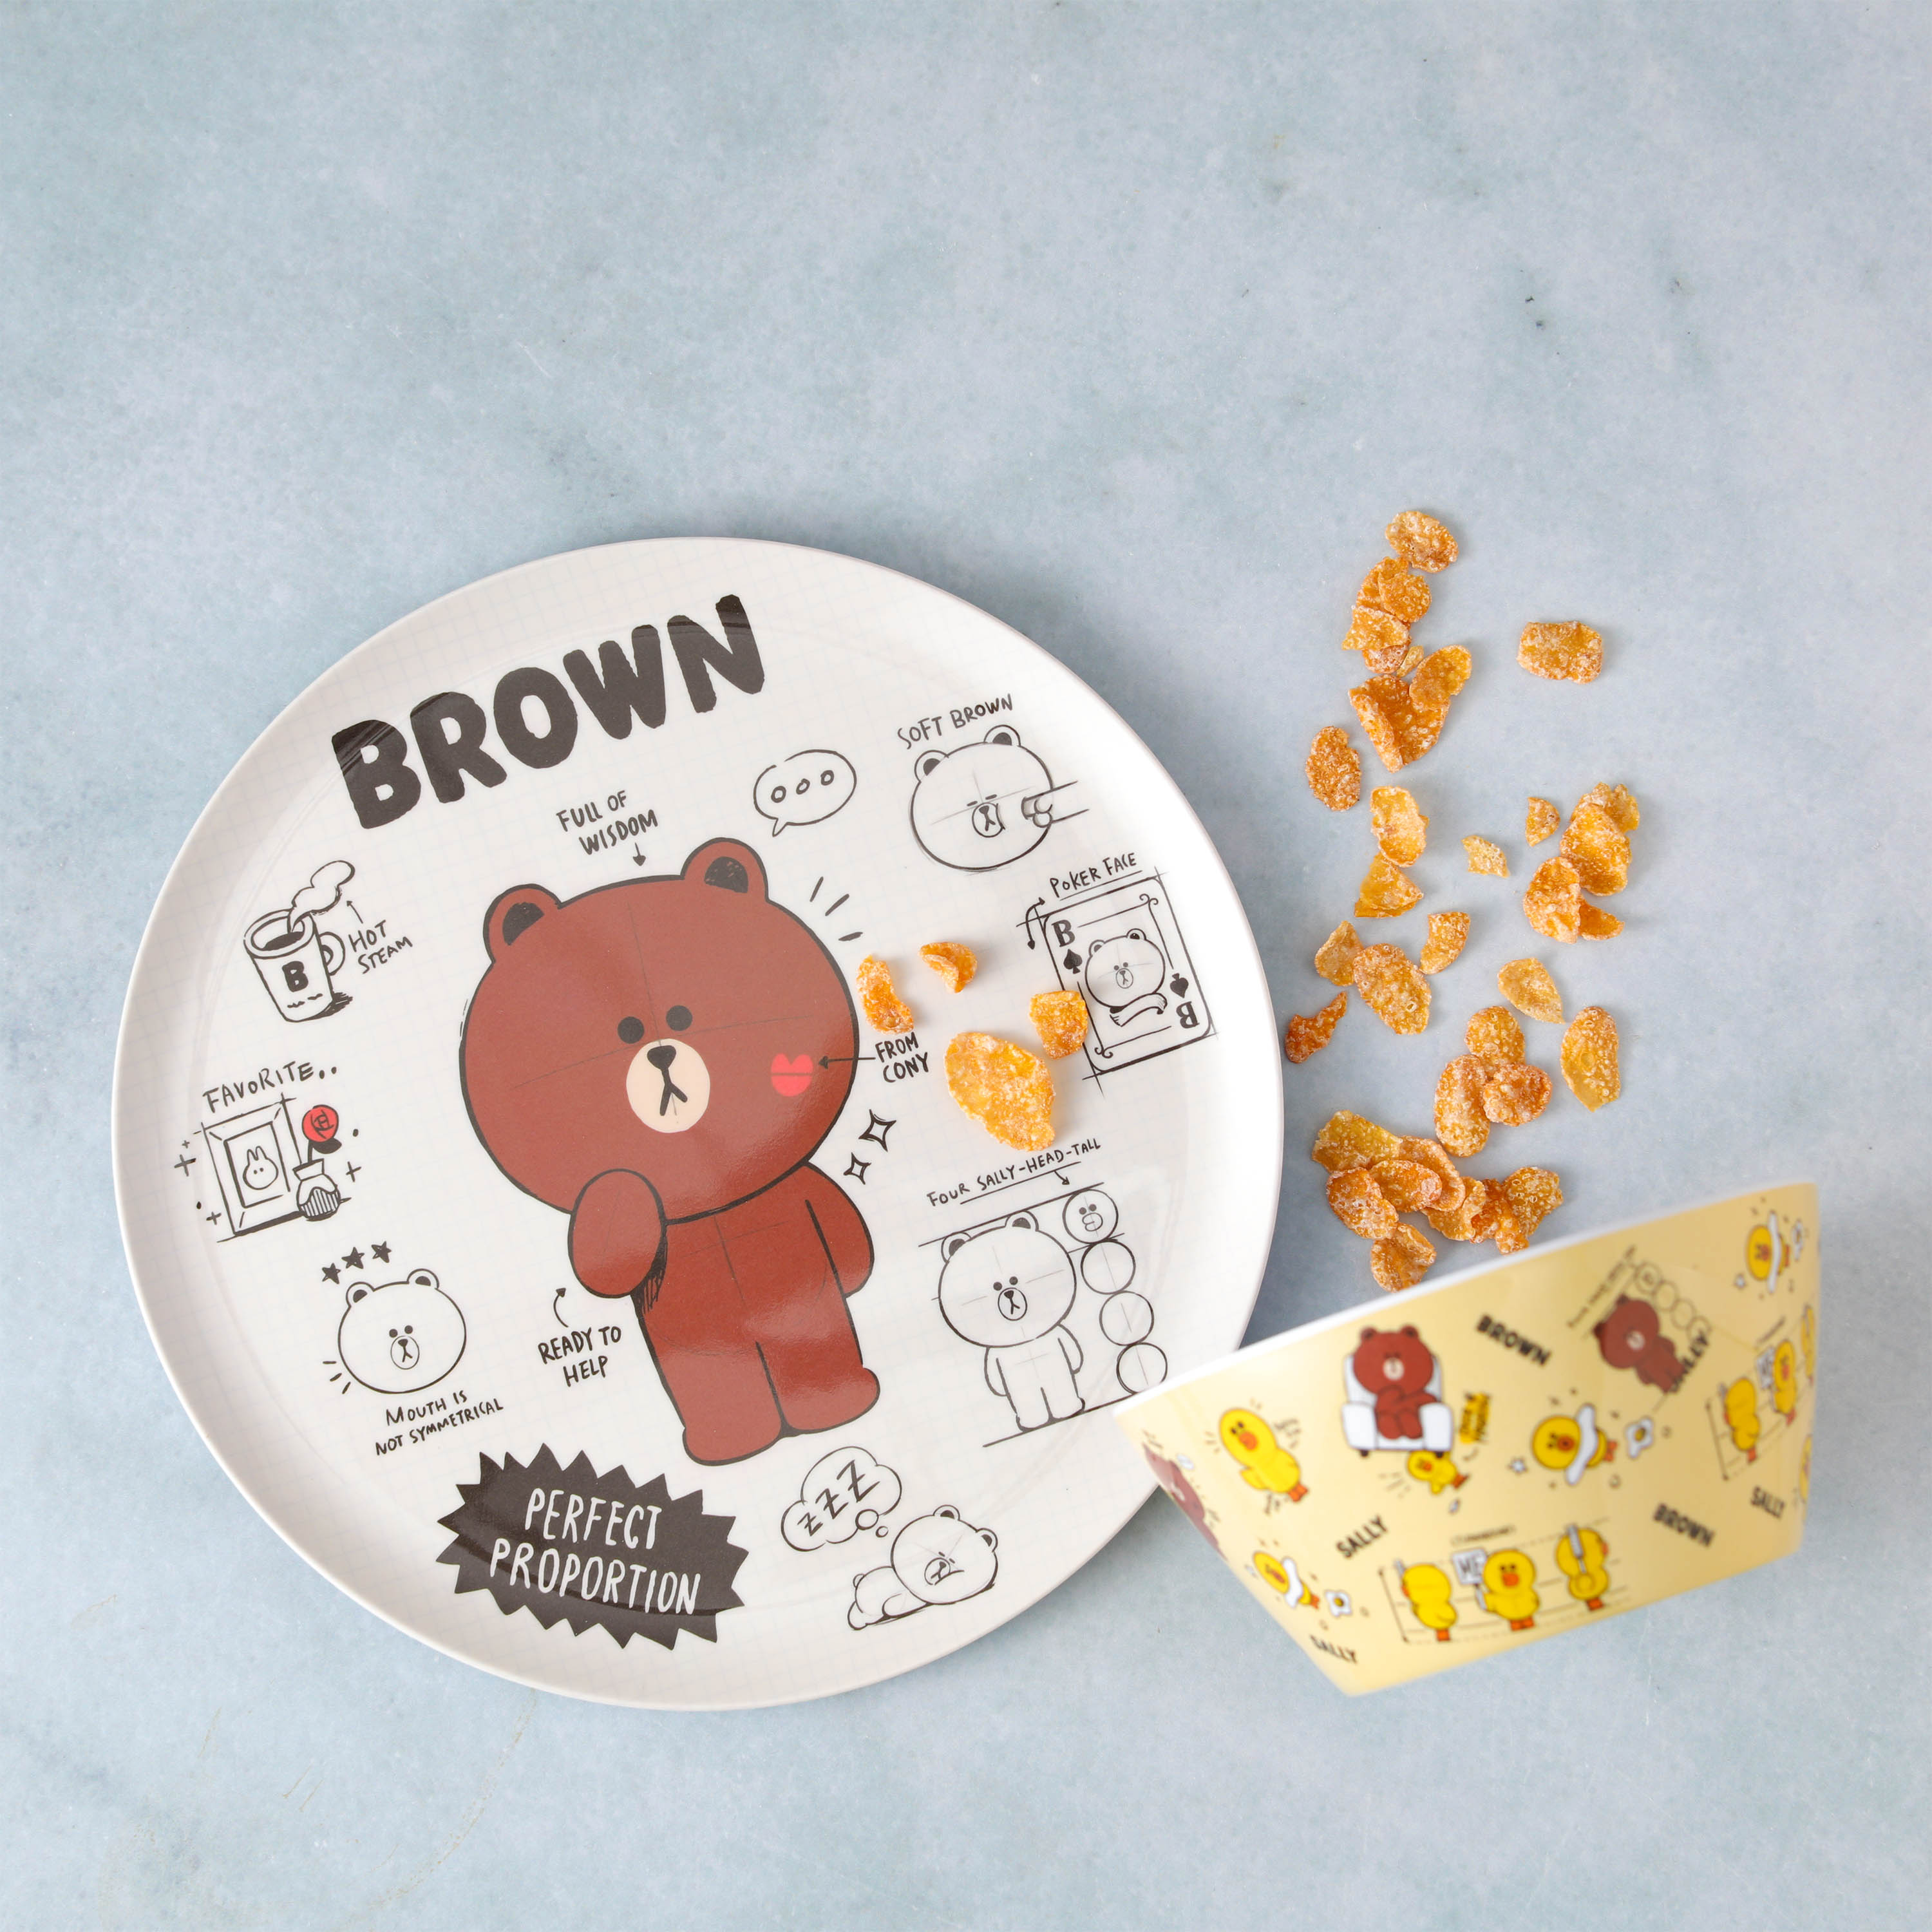 Line Friends Dinnerware Set, Teddy Bear, 2-piece set slideshow image 3